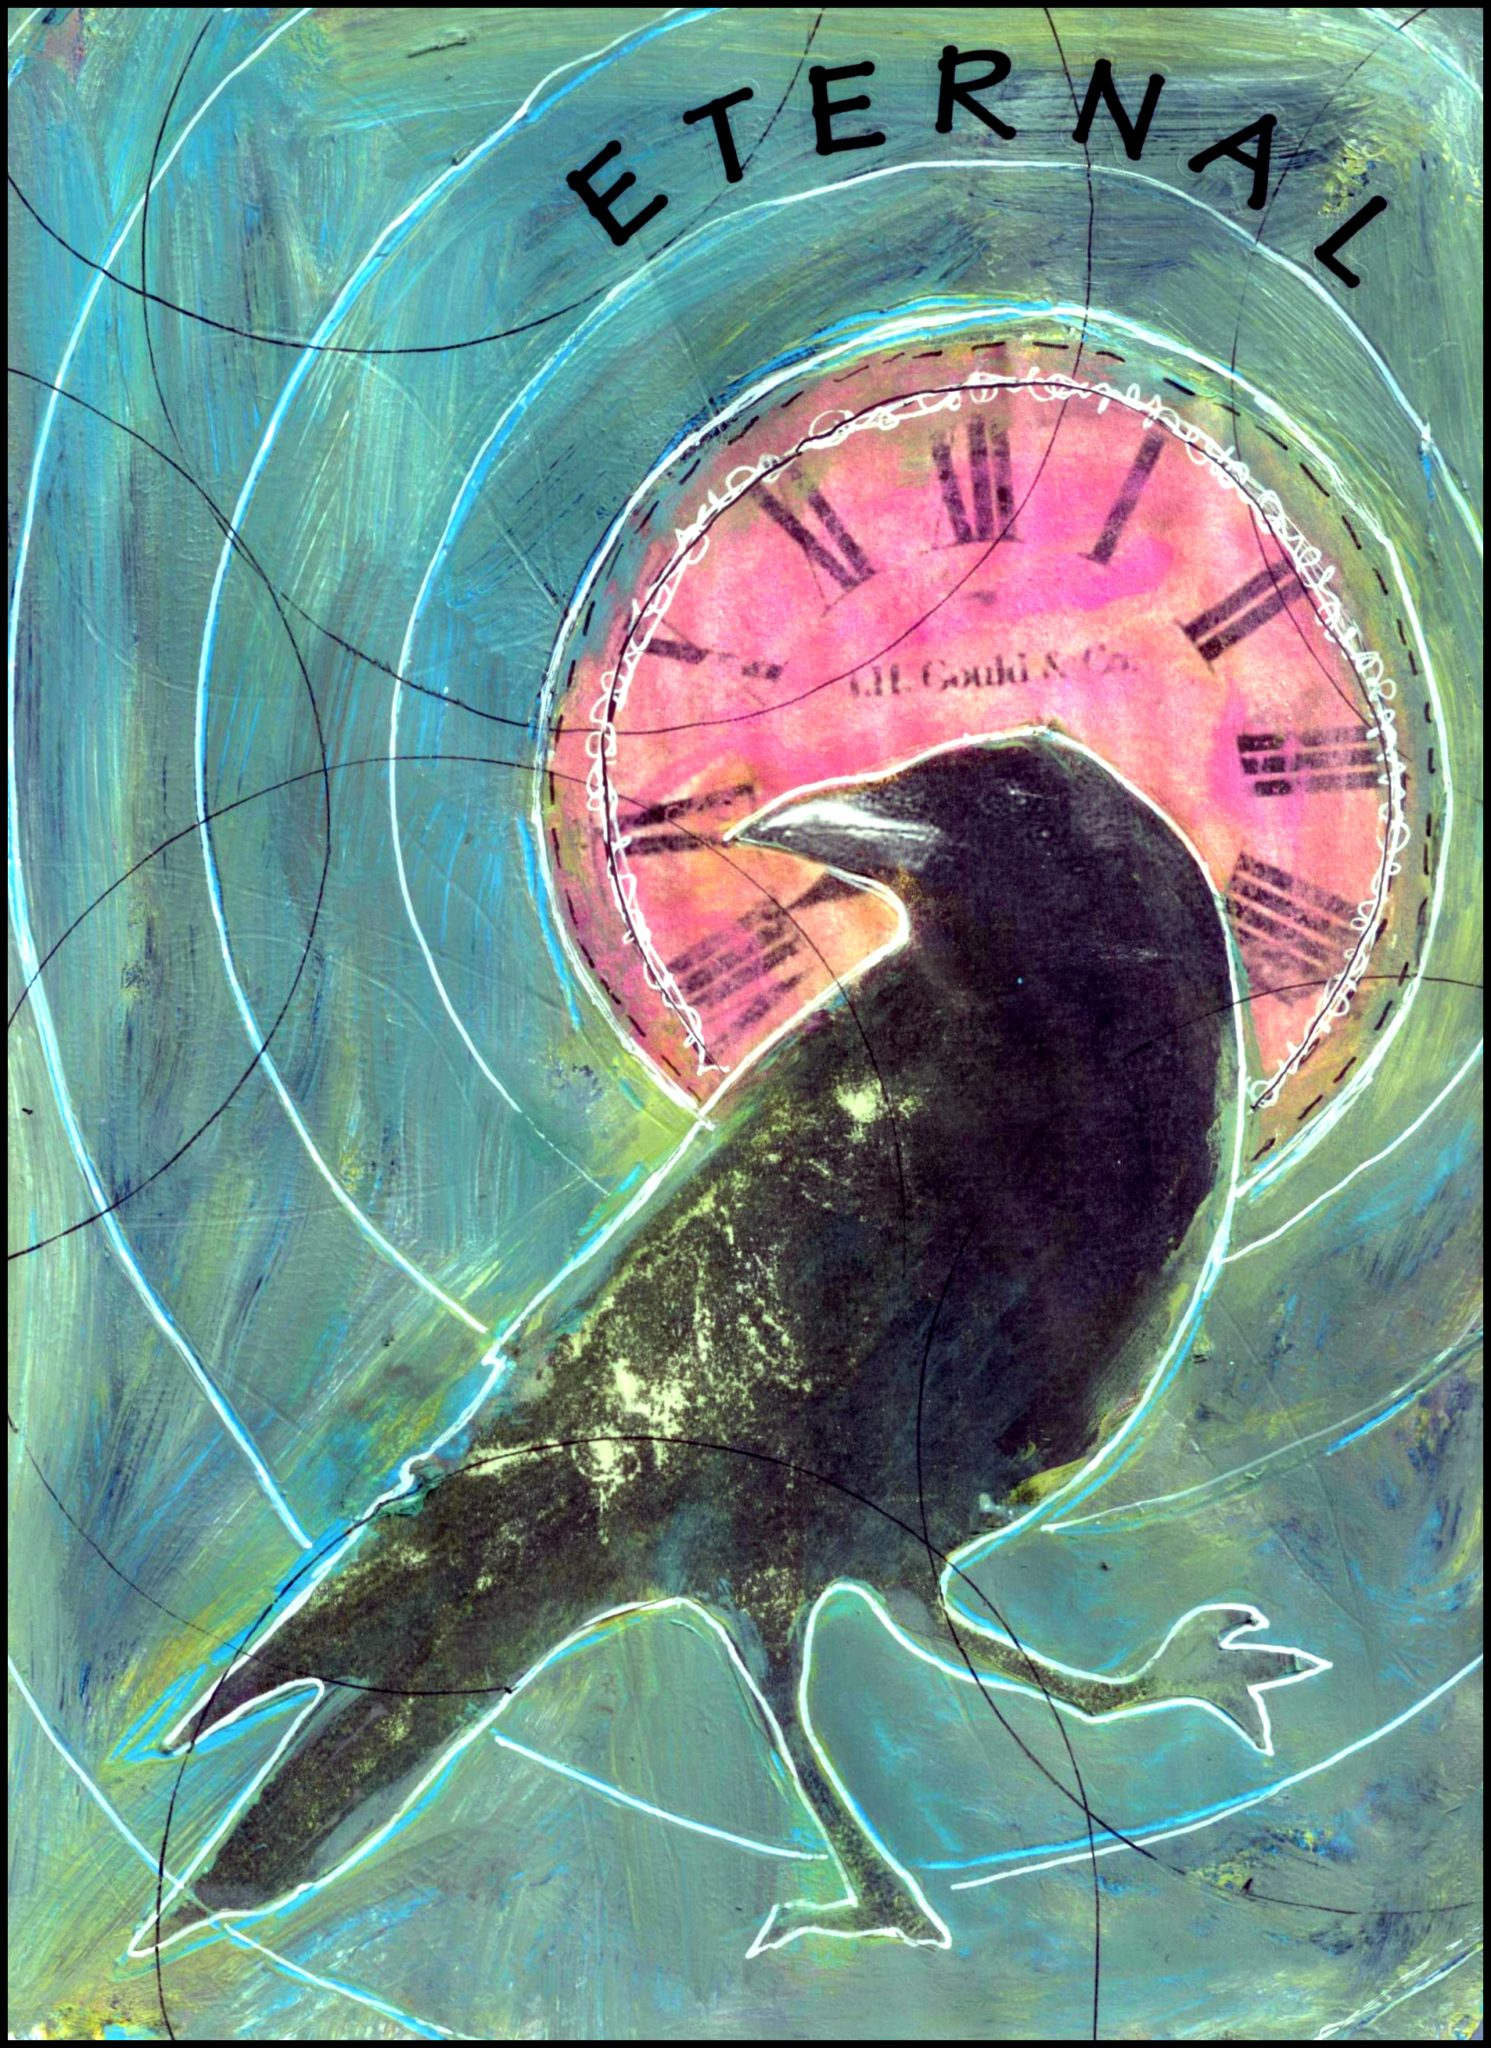 Eternal Crow, mixed media collage by Courtney Putnam